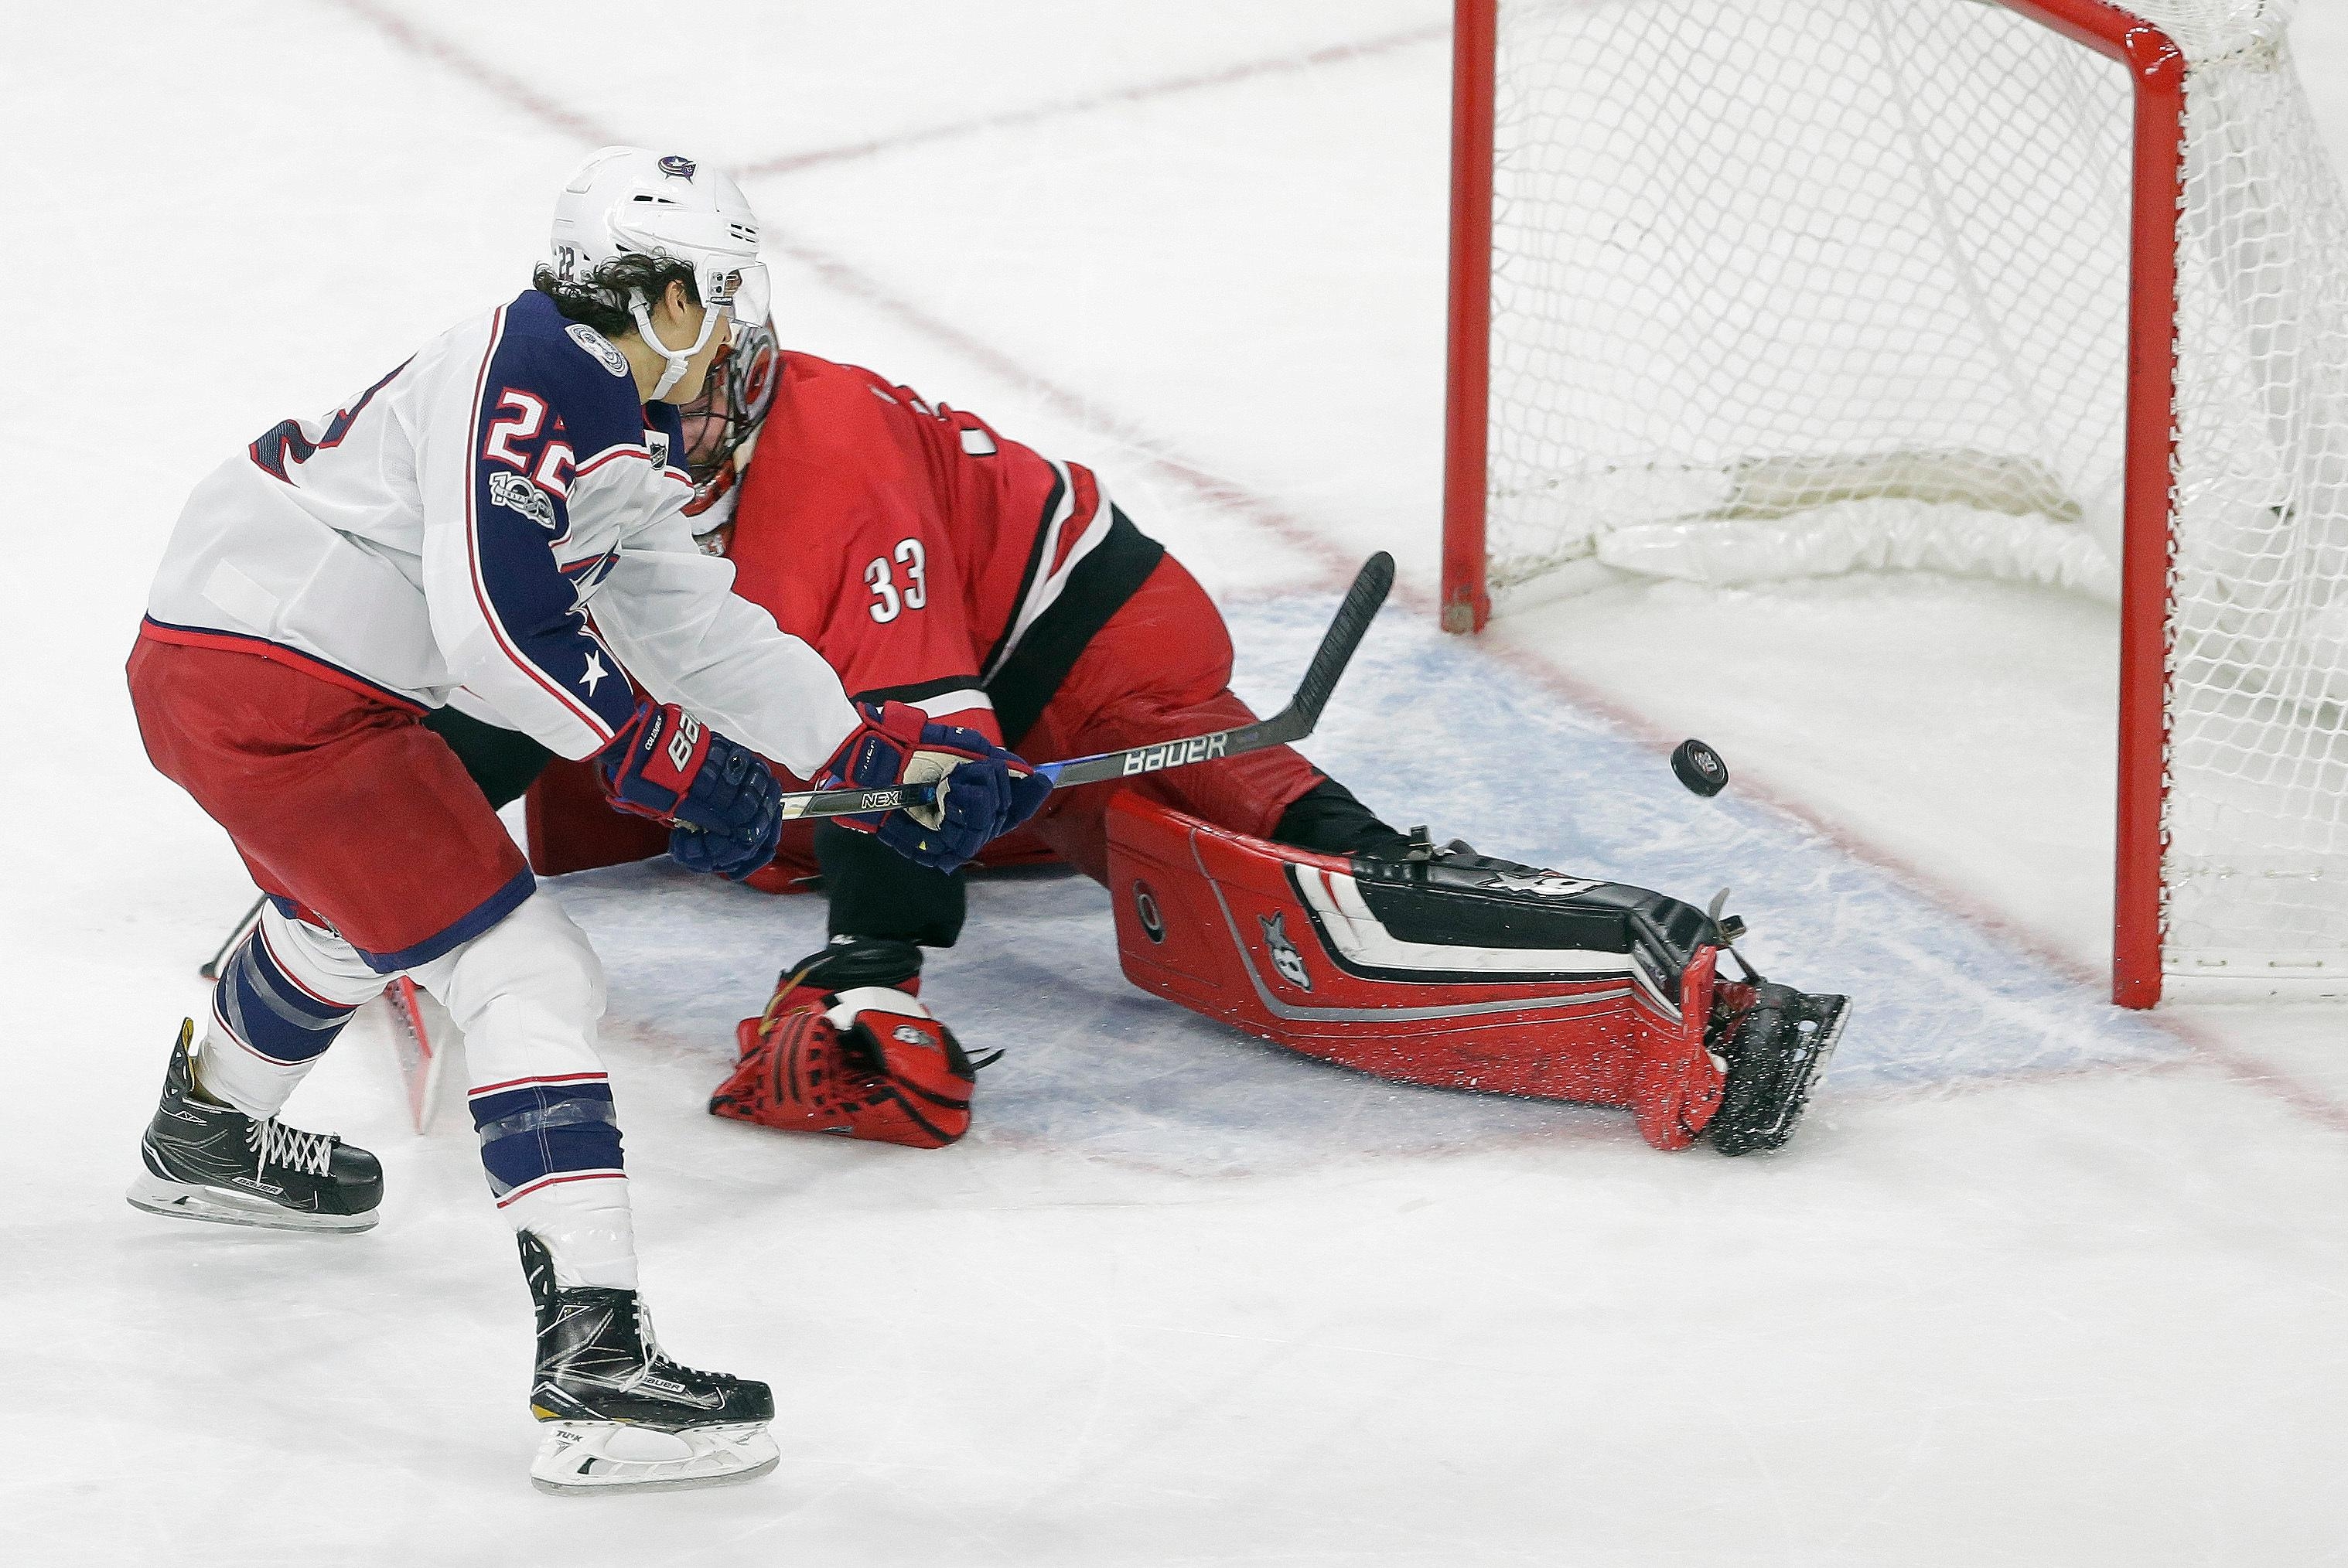 Columbus Blue Jackets' Sonny Milano (22) scores the game-winning goal against Carolina Hurricanes goalie Scott Darling during overtime in an NHL hockey game in Raleigh, N.C., Tuesday, Oct. 10, 2017. Columbus won 2-1. (AP Photo/Gerry Broome)